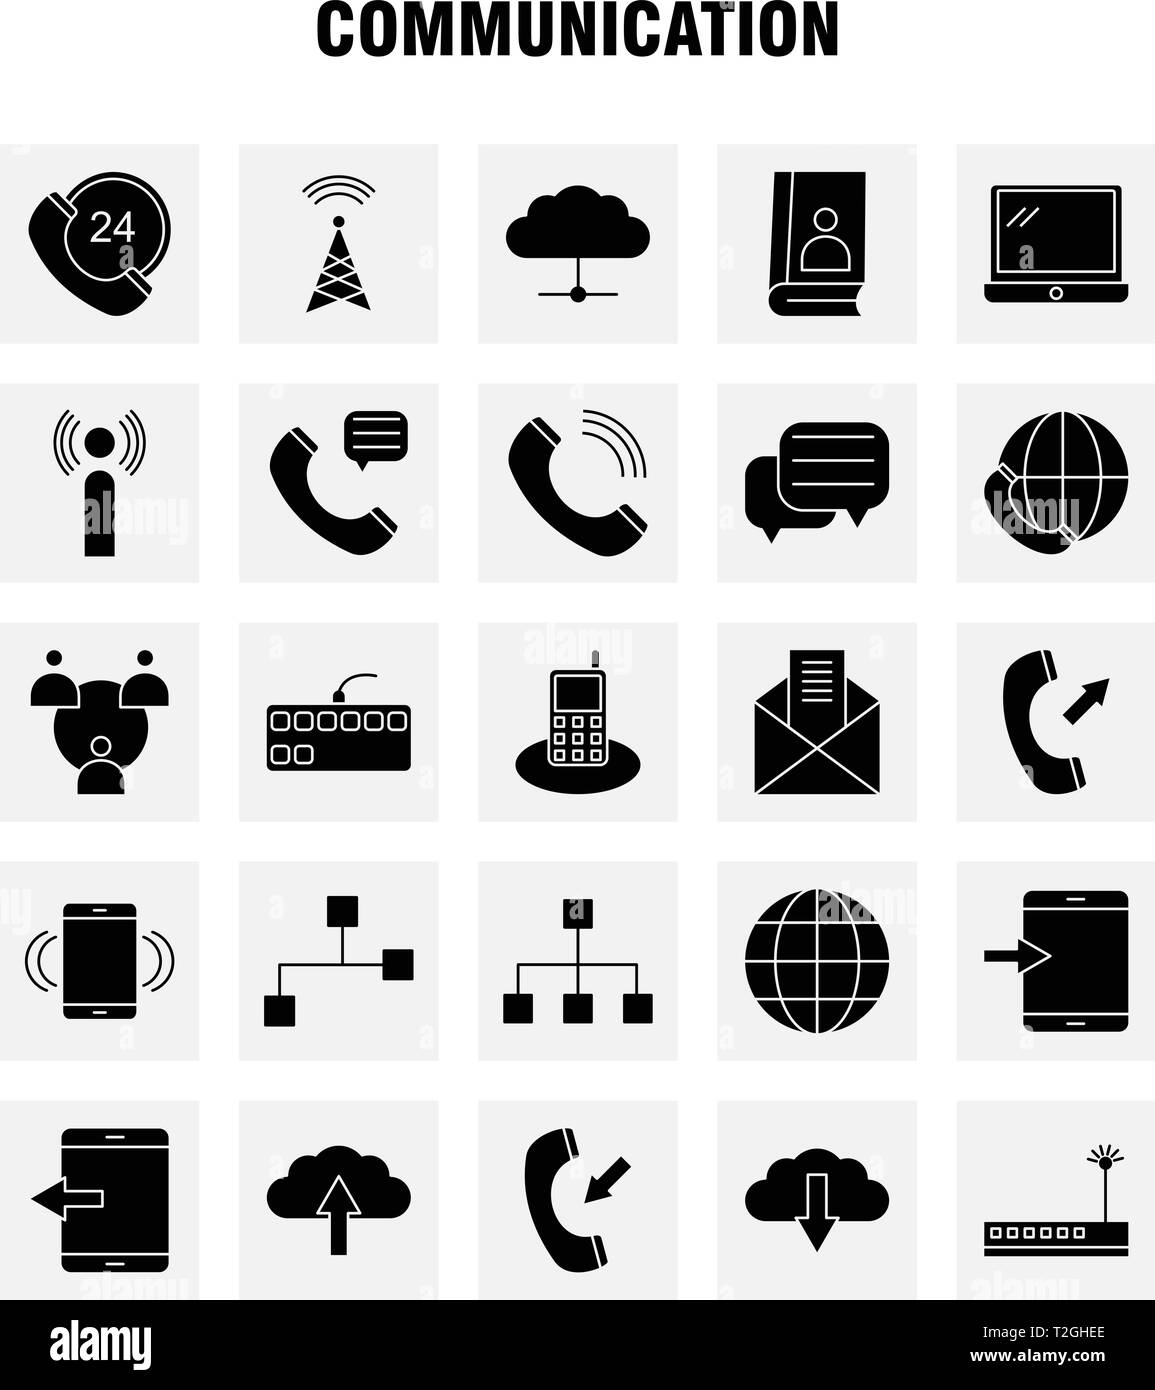 Fashion Solid Glyph Icons Set For Infographics, Mobile UX/UI Kit And Print Design. Include: Date, Day, Month, Event, Crown, King, Hat, Jewel, Collecti - Stock Image